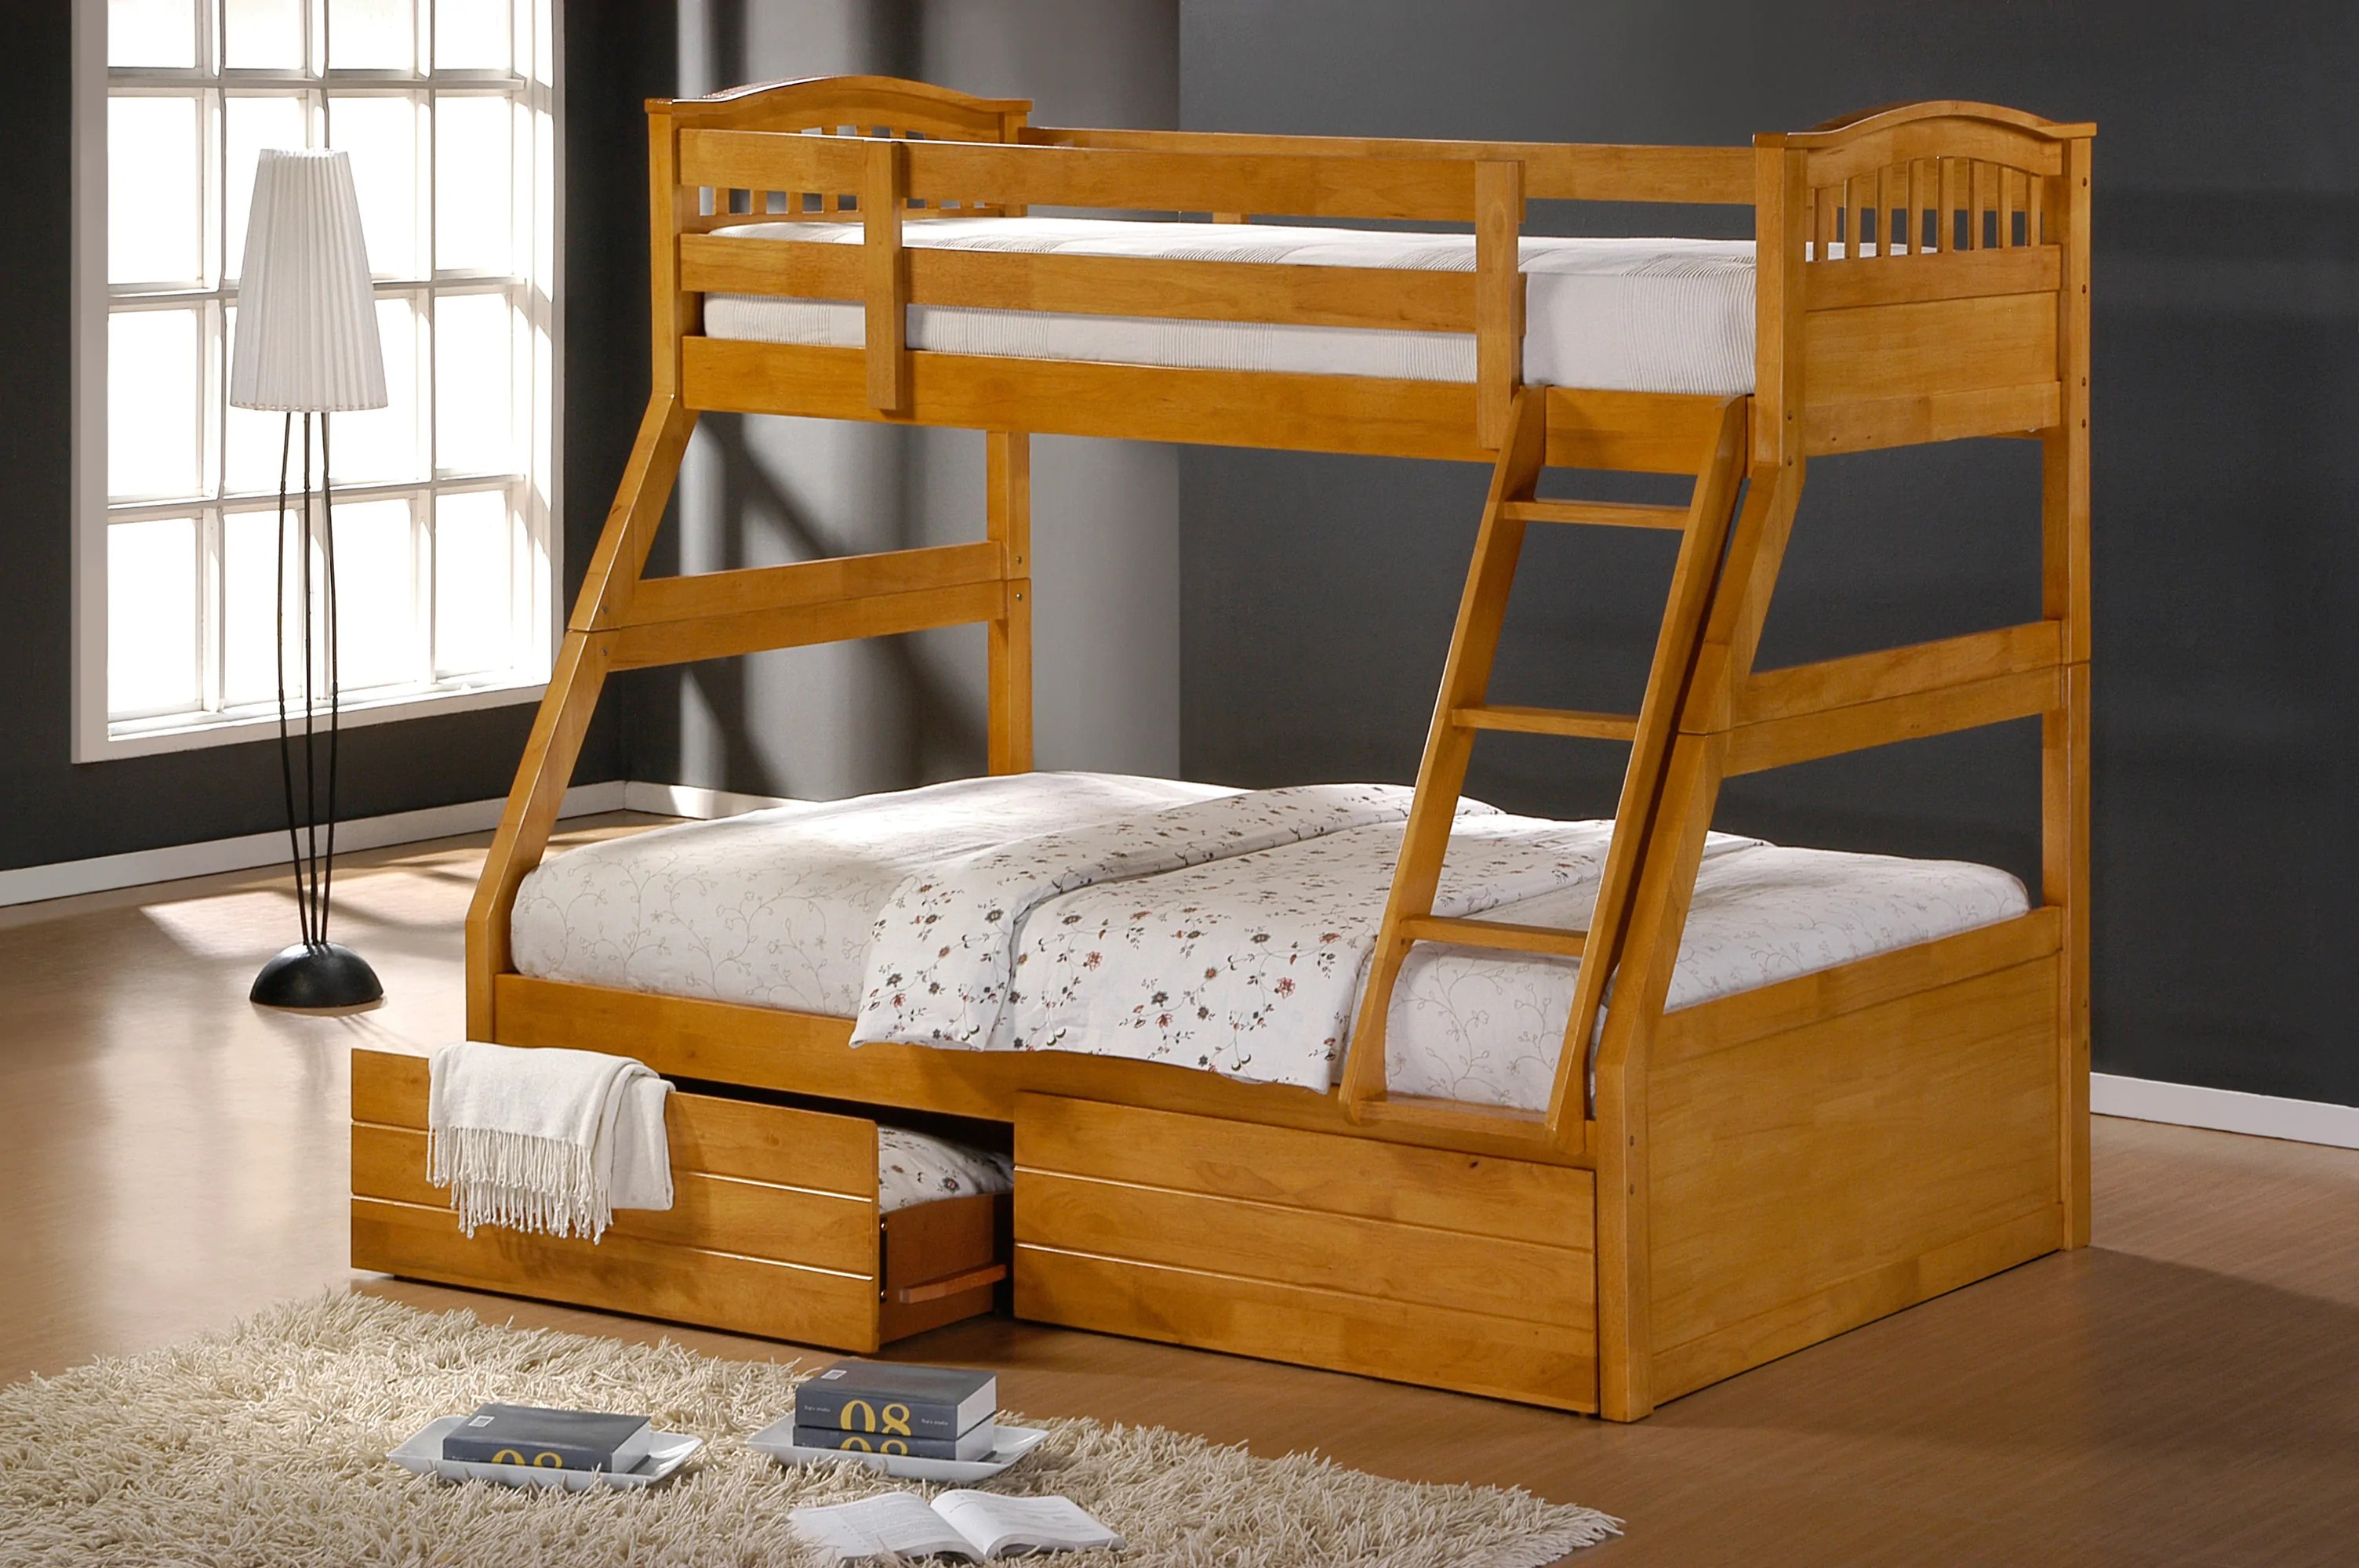 Double Bunk Beds Ashley Maple Duo Double Single Bunk Beds With Drawers